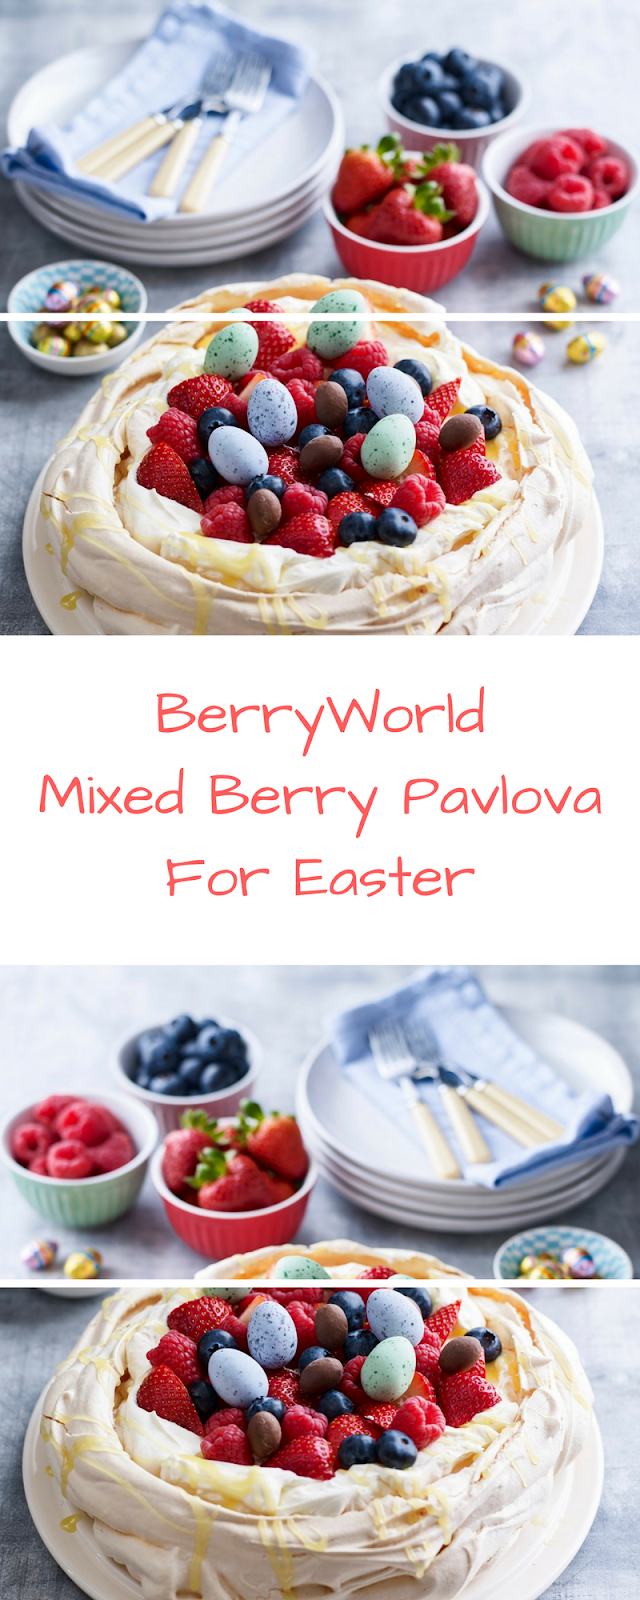 BerryWorld Mixed Berry Pavlova For Easter